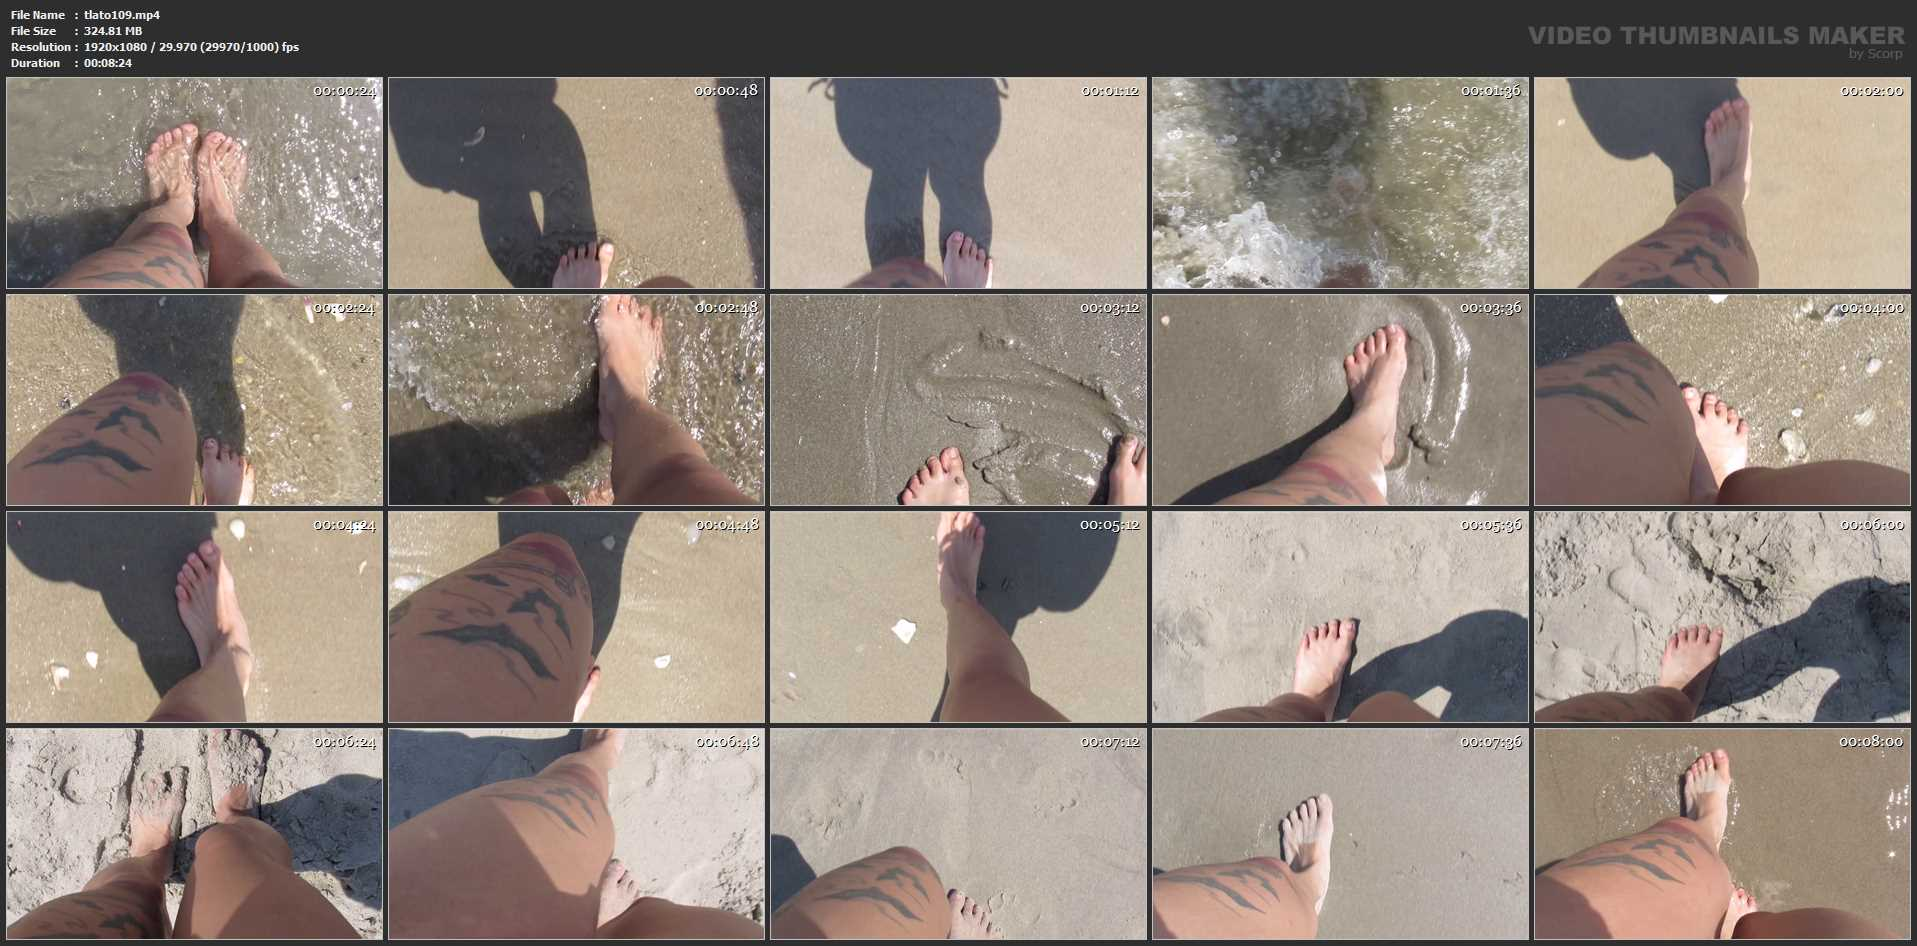 Mistress Toro In Scene: BAREFOOT BEACH WALKING - THELADYTORO - FULL HD/1080p/MP4